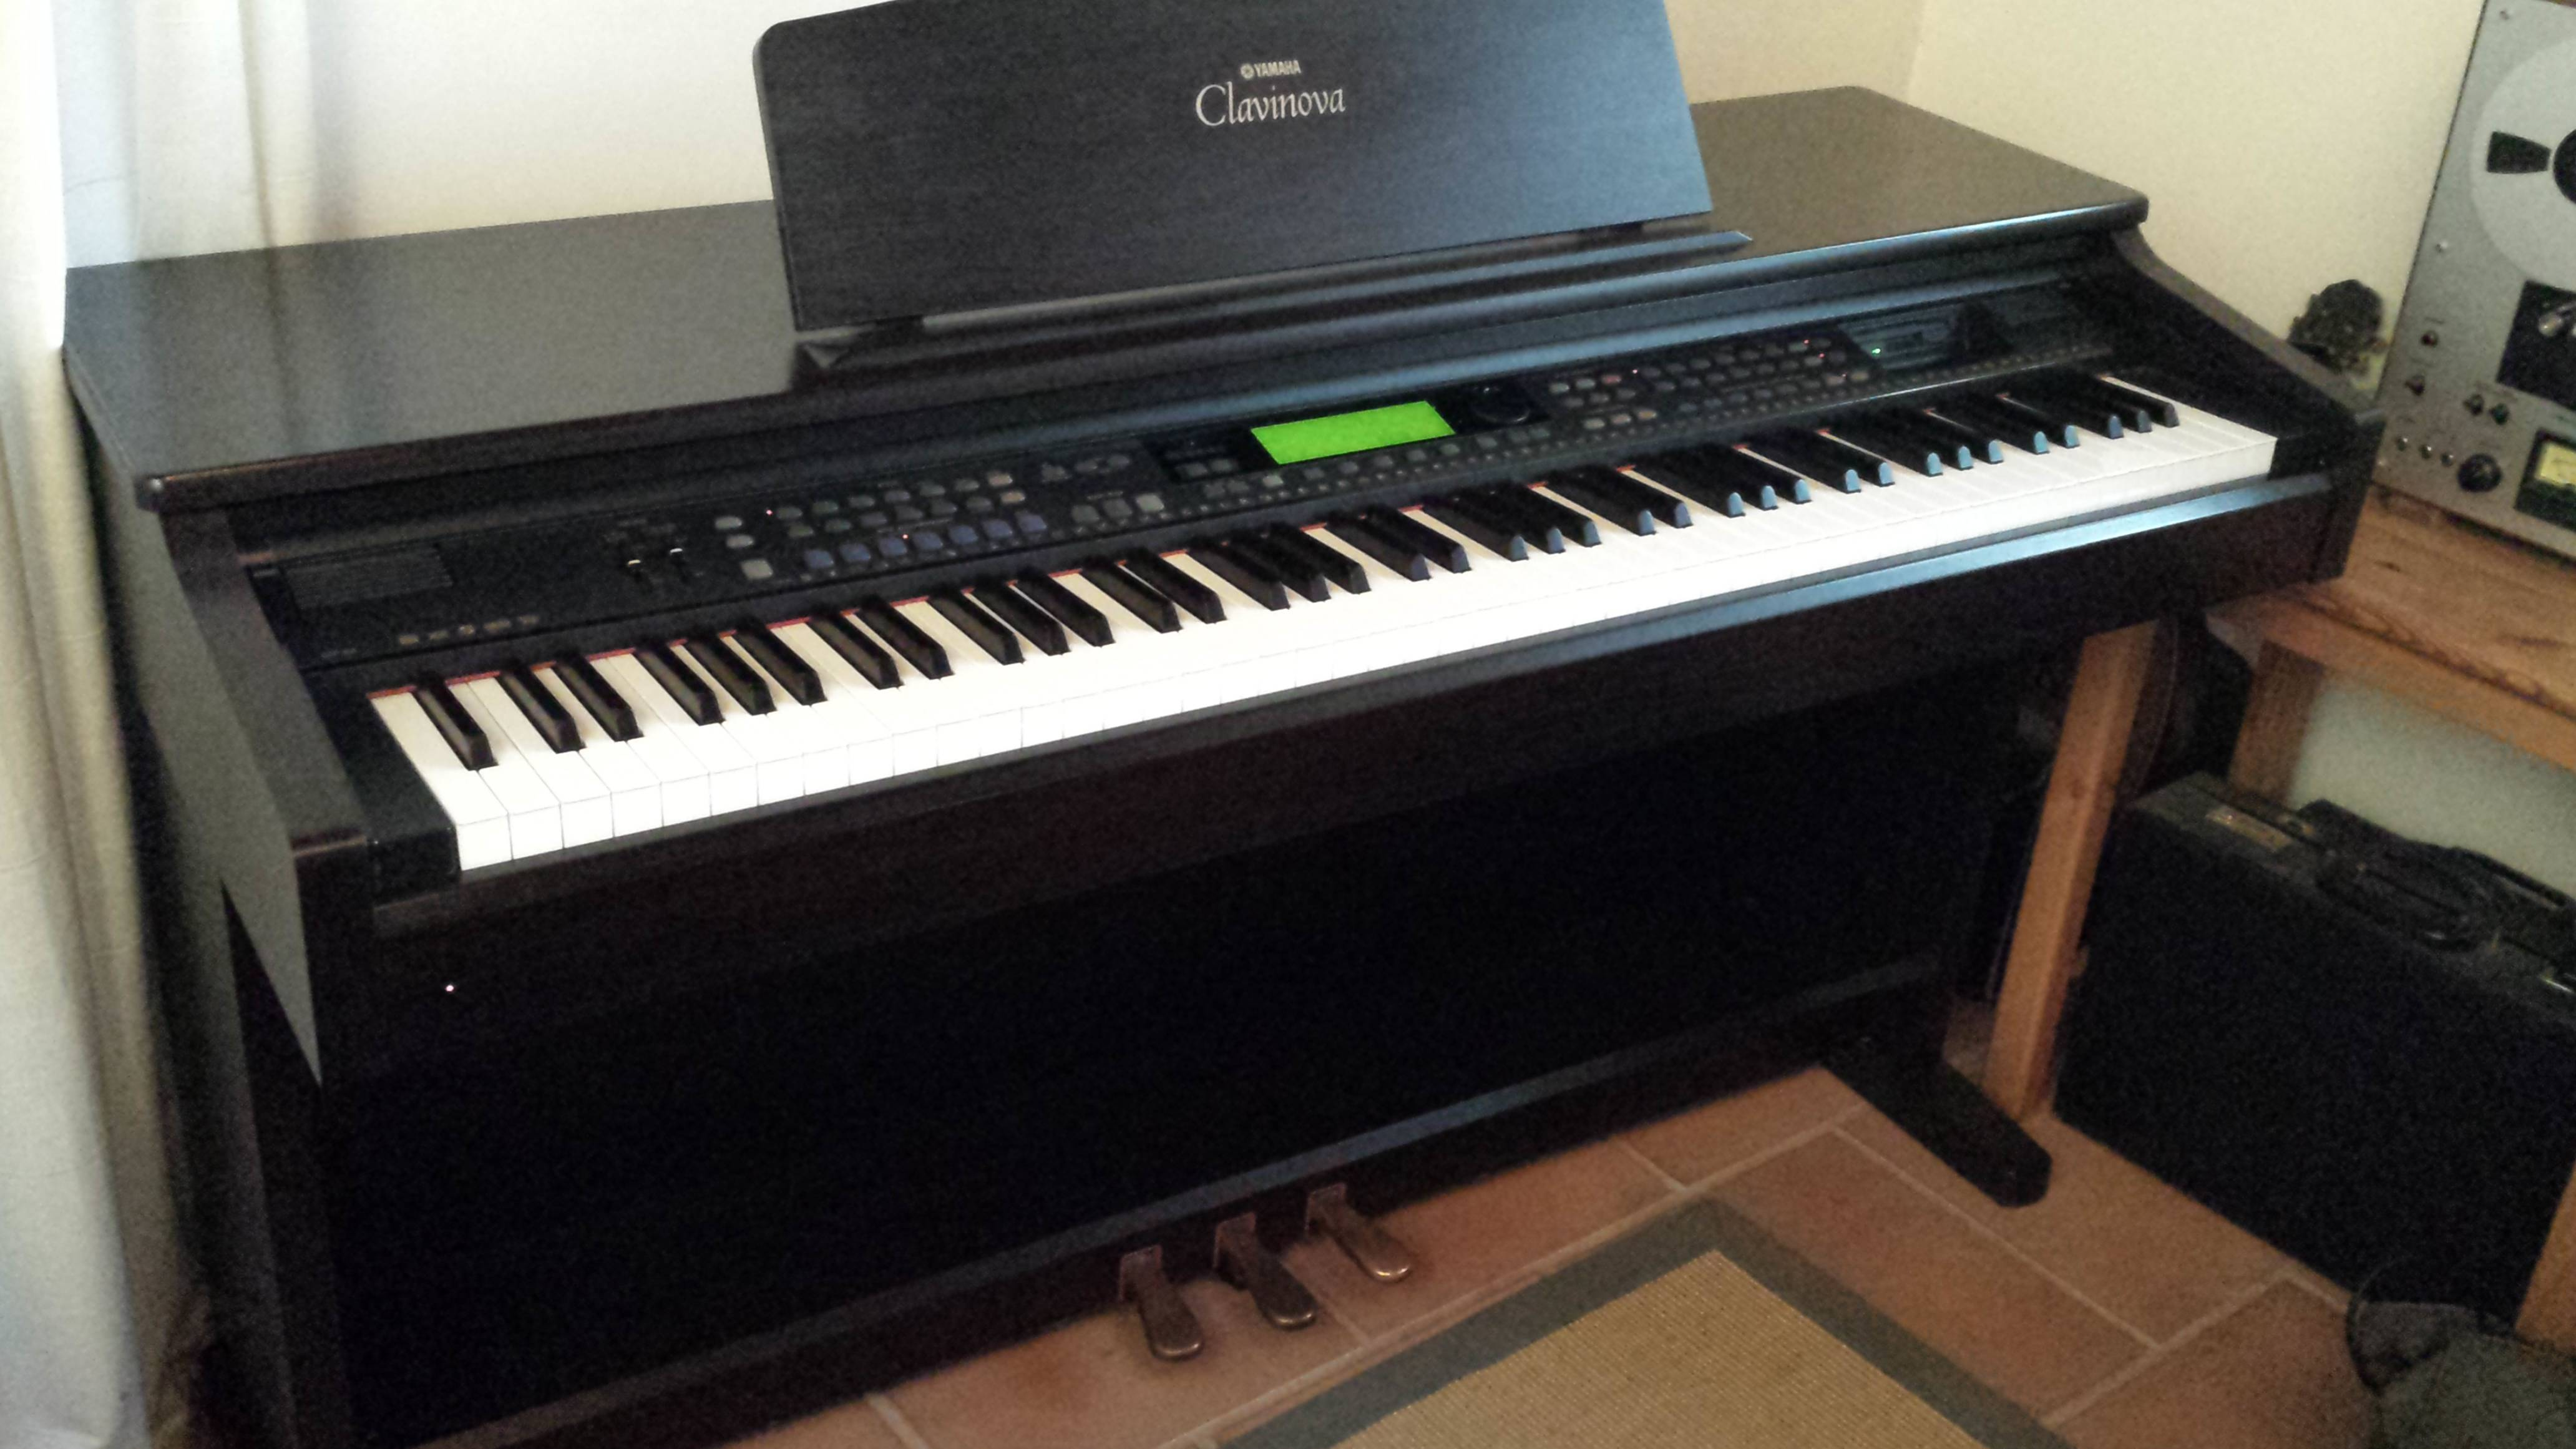 Yamaha cvp 103 image 822569 audiofanzine for Yamaha clavinova price list